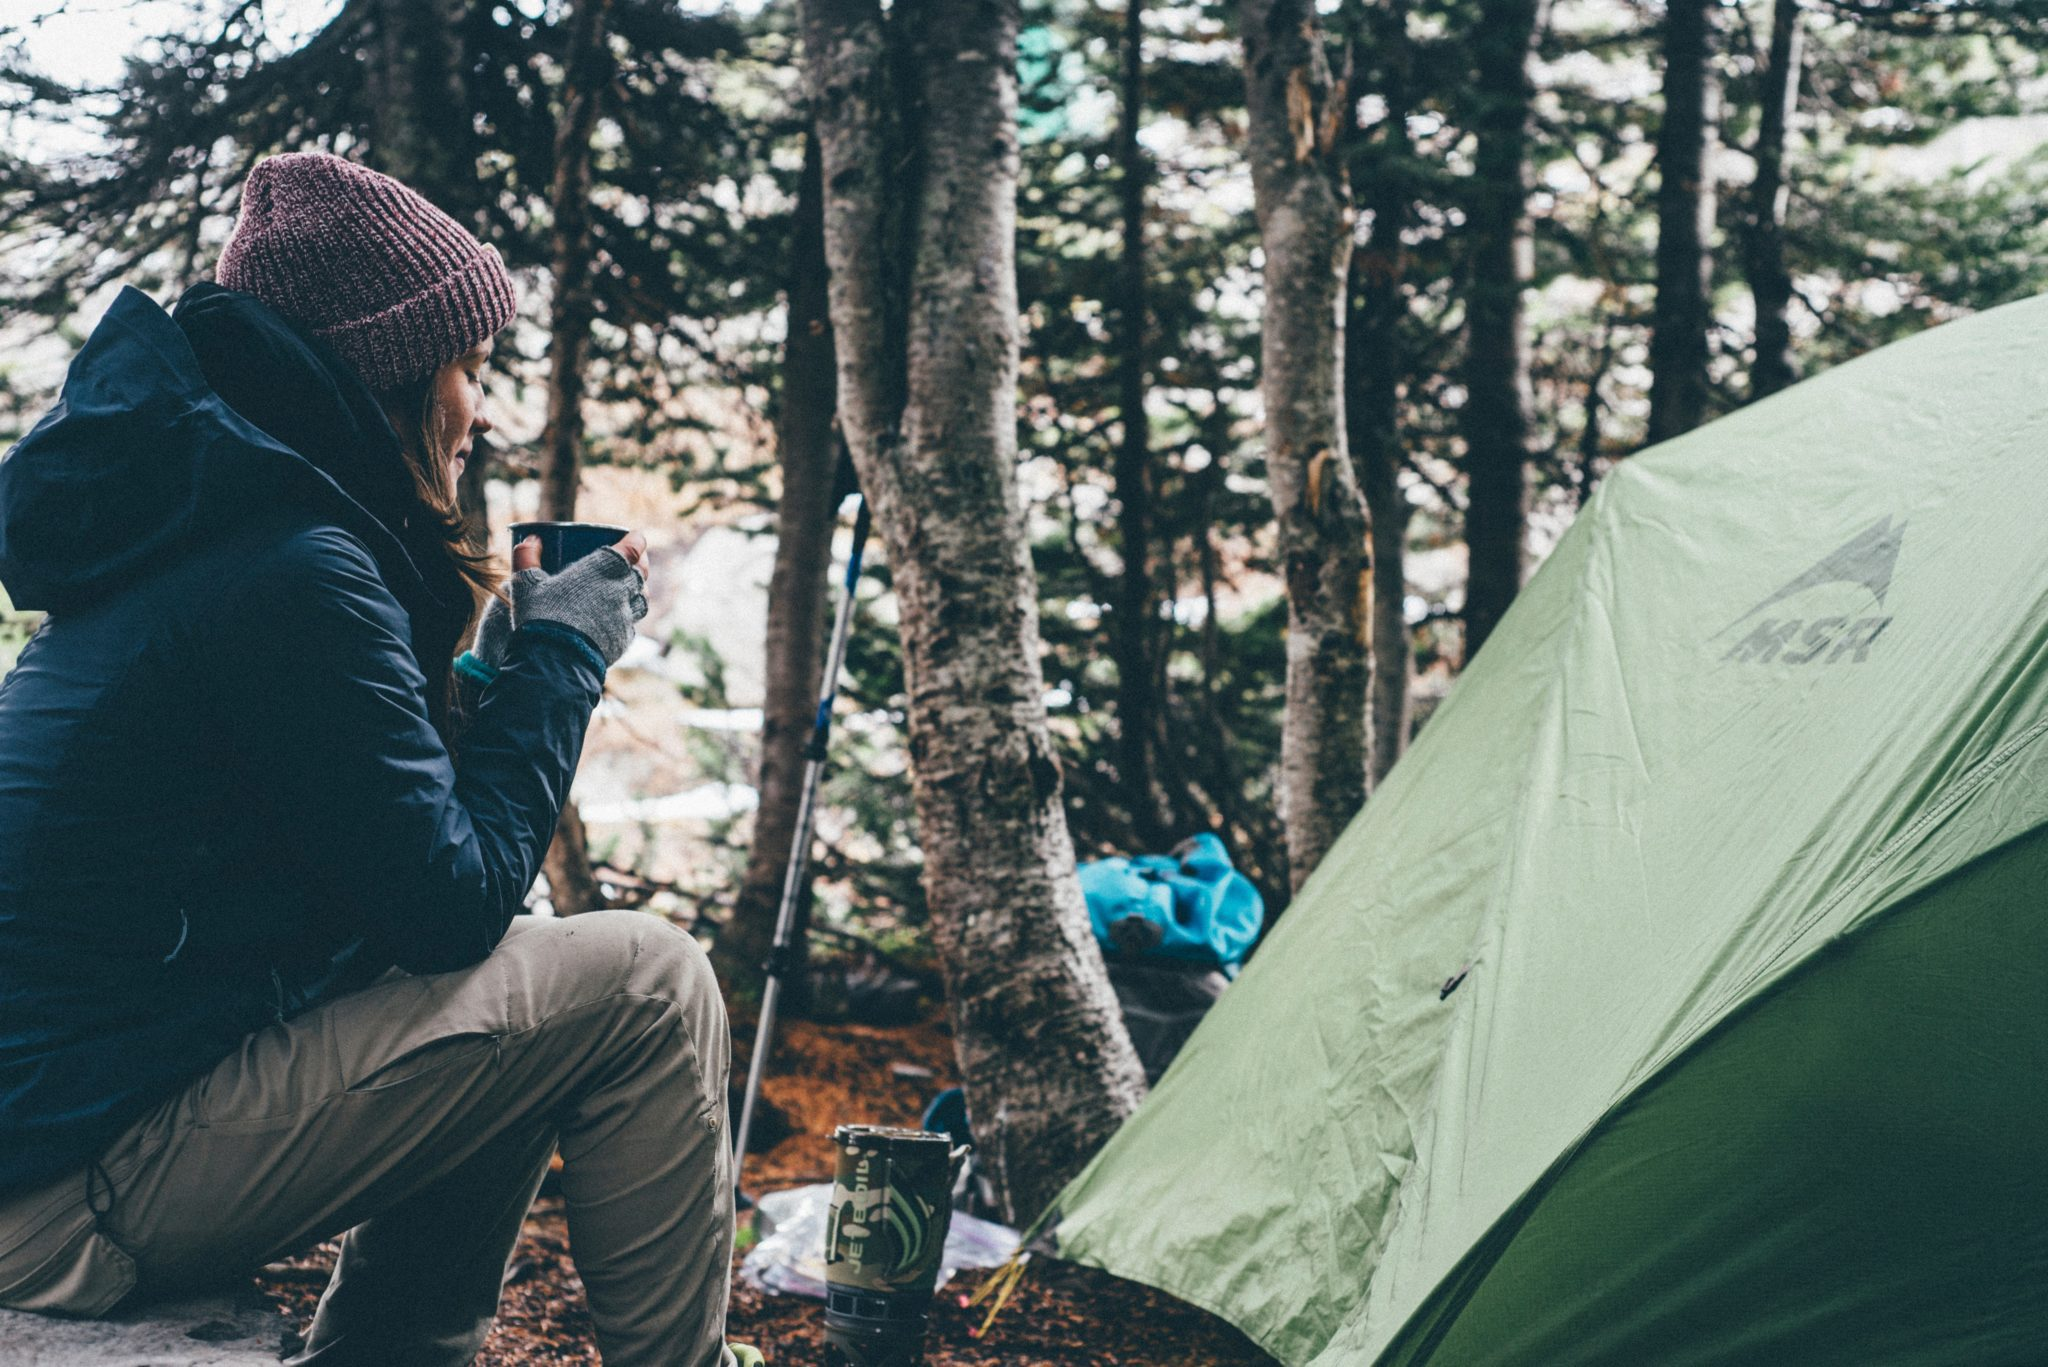 , FIVE FREE CAMPGROUNDS TO TRY FOR YOUR NEXT TRIP